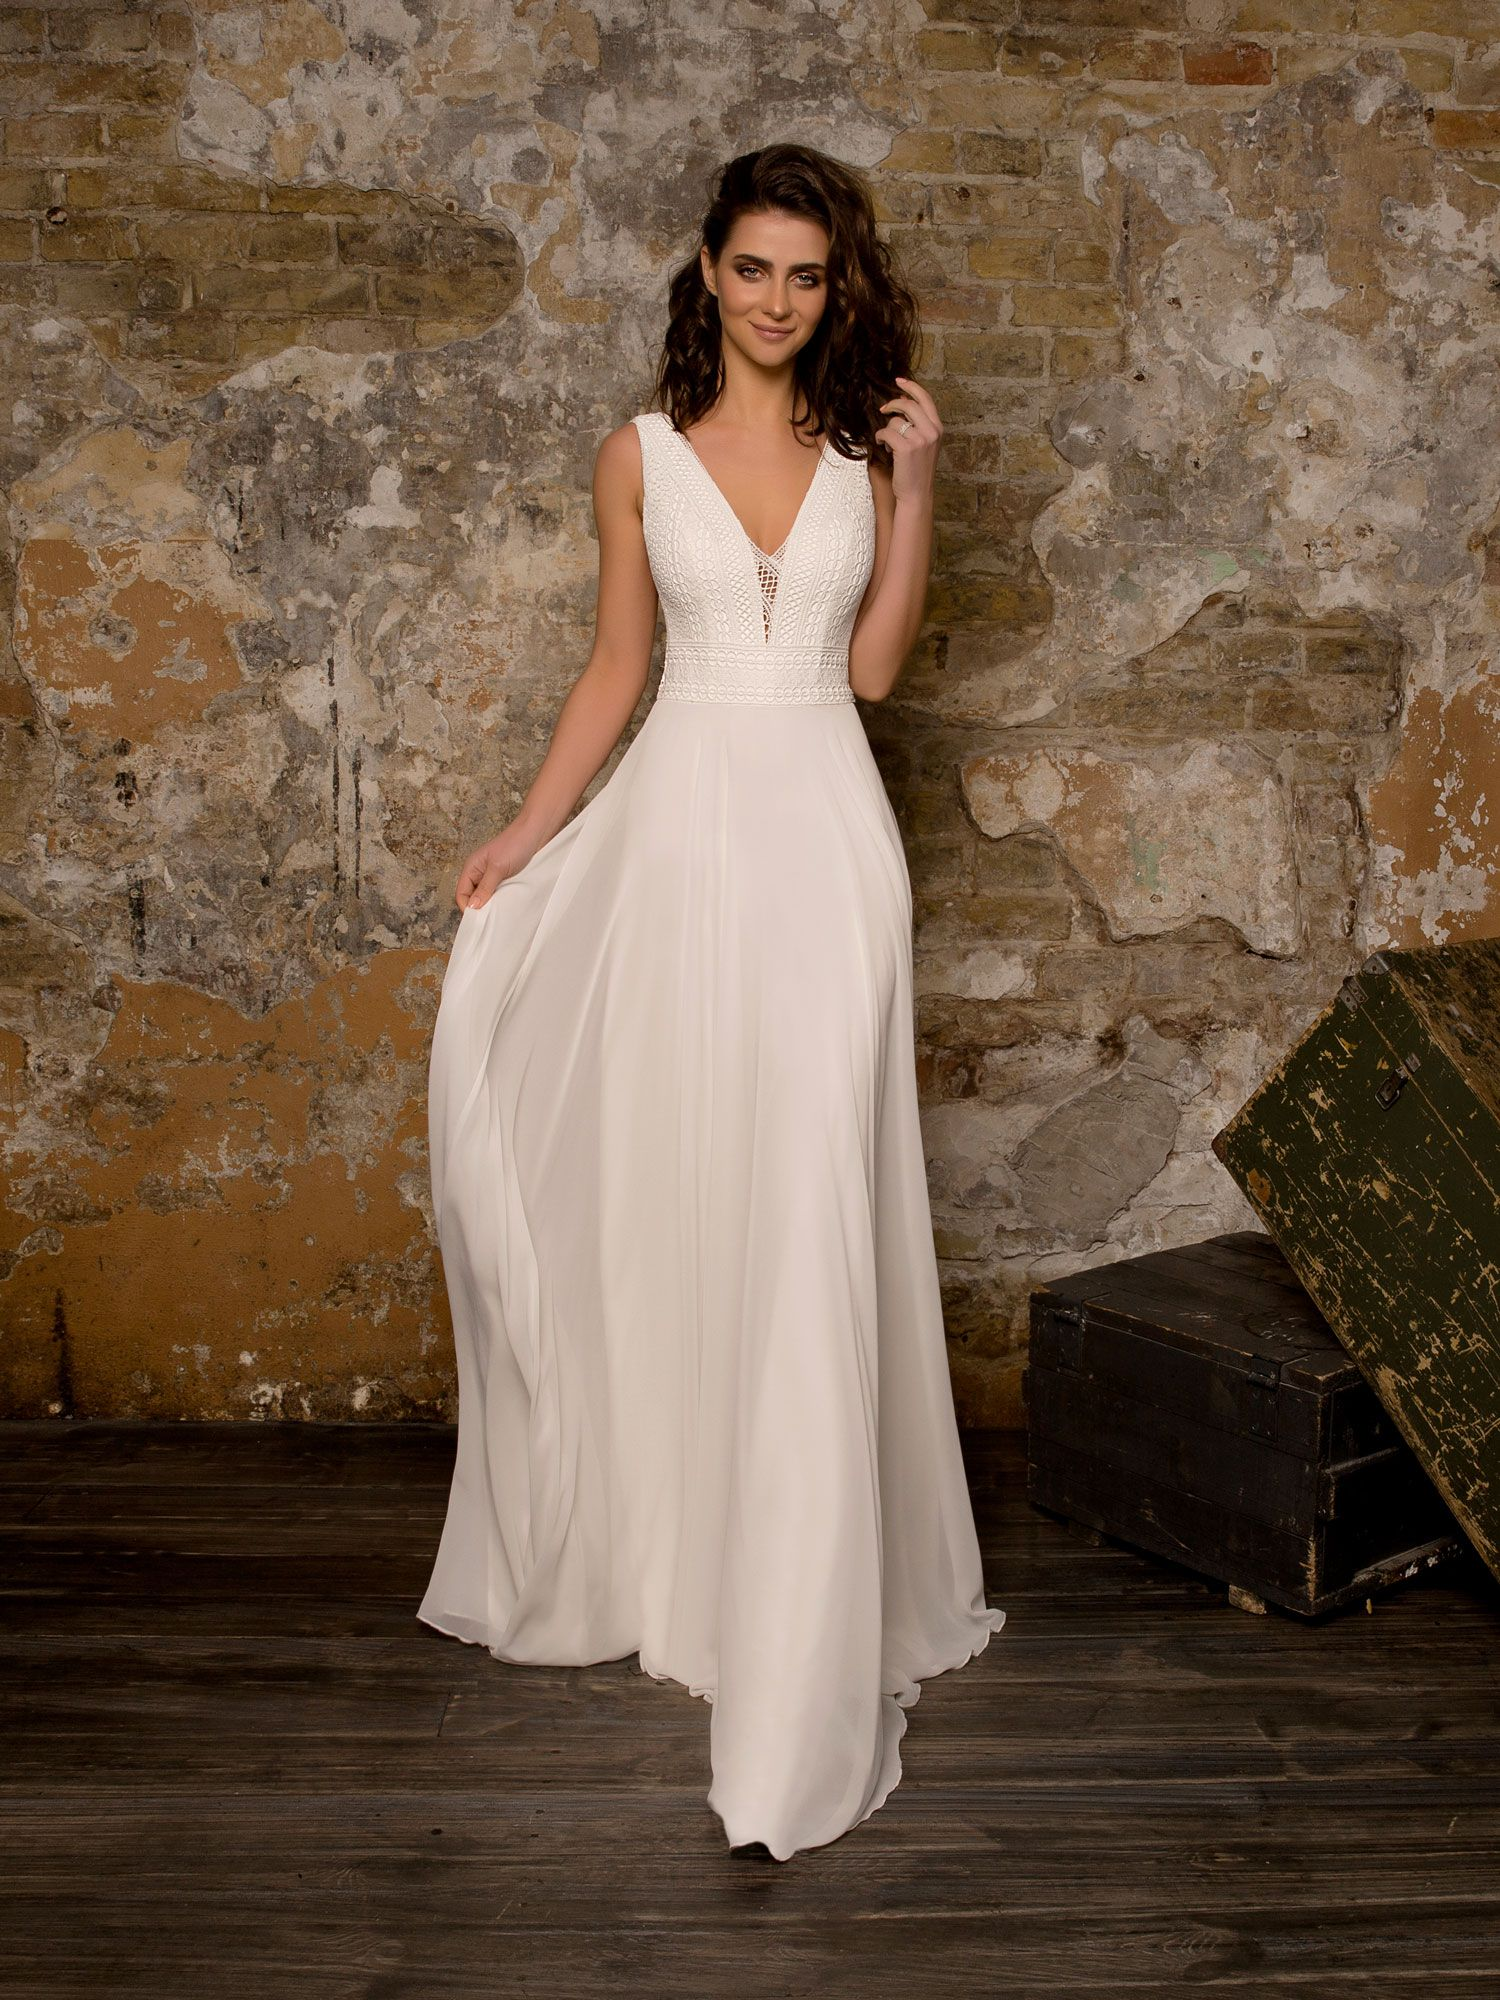 Bv Reims Reims In 2019 Wedding Pinterest Wedding Dresses Wedding And